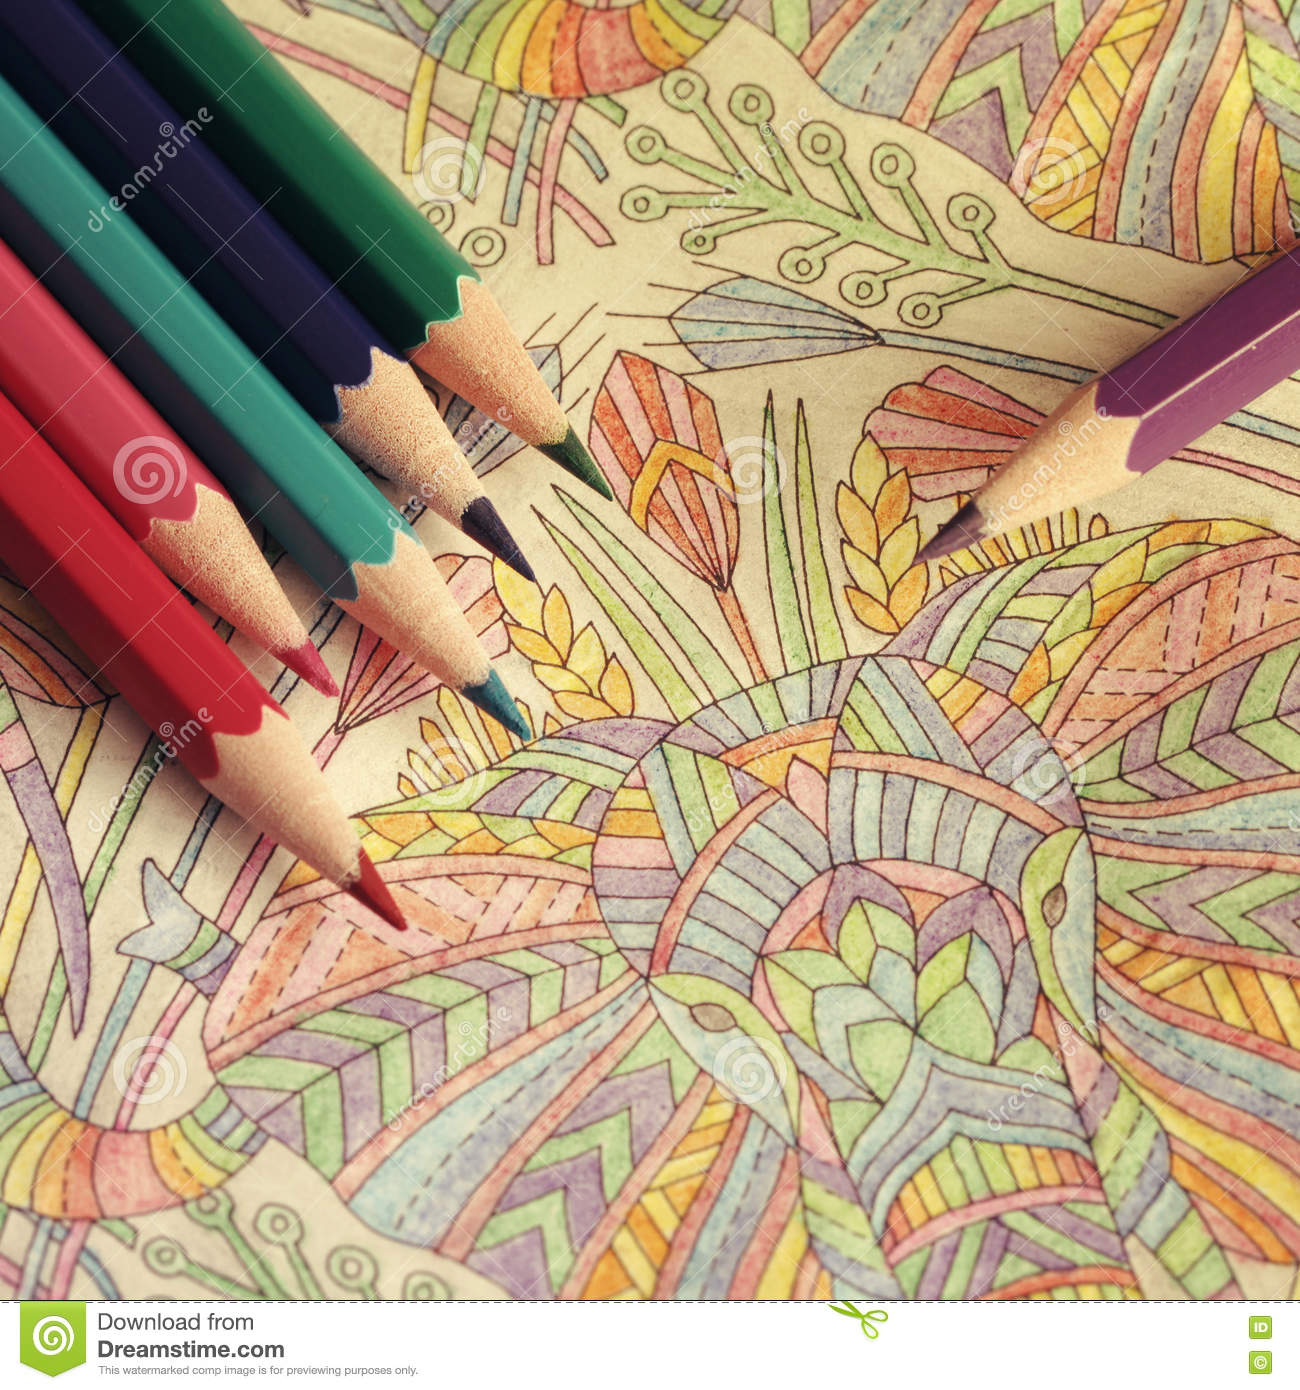 The Coloring Book With Pencils Stock Image - Image of line, flower ...